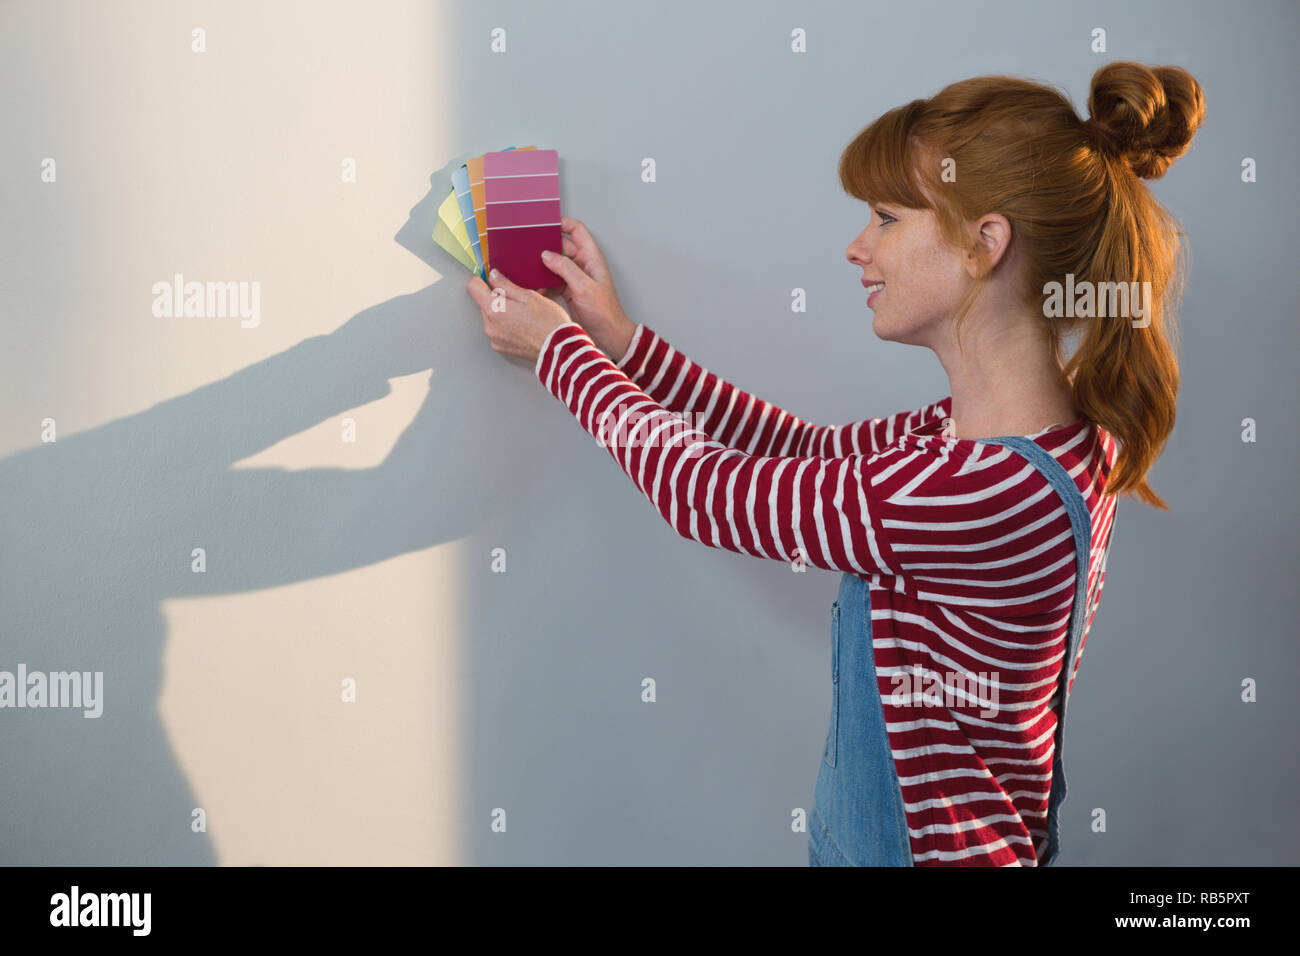 Female painter matching color shades - Stock Image